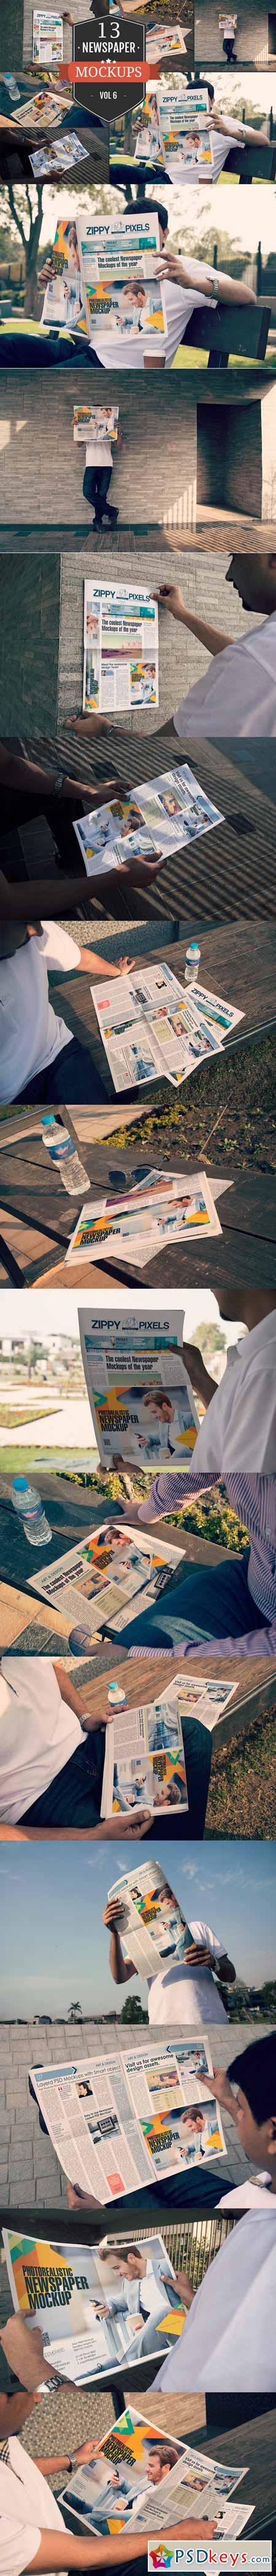 Outdoor Newspaper Ad Mockups Vol. 6 369333